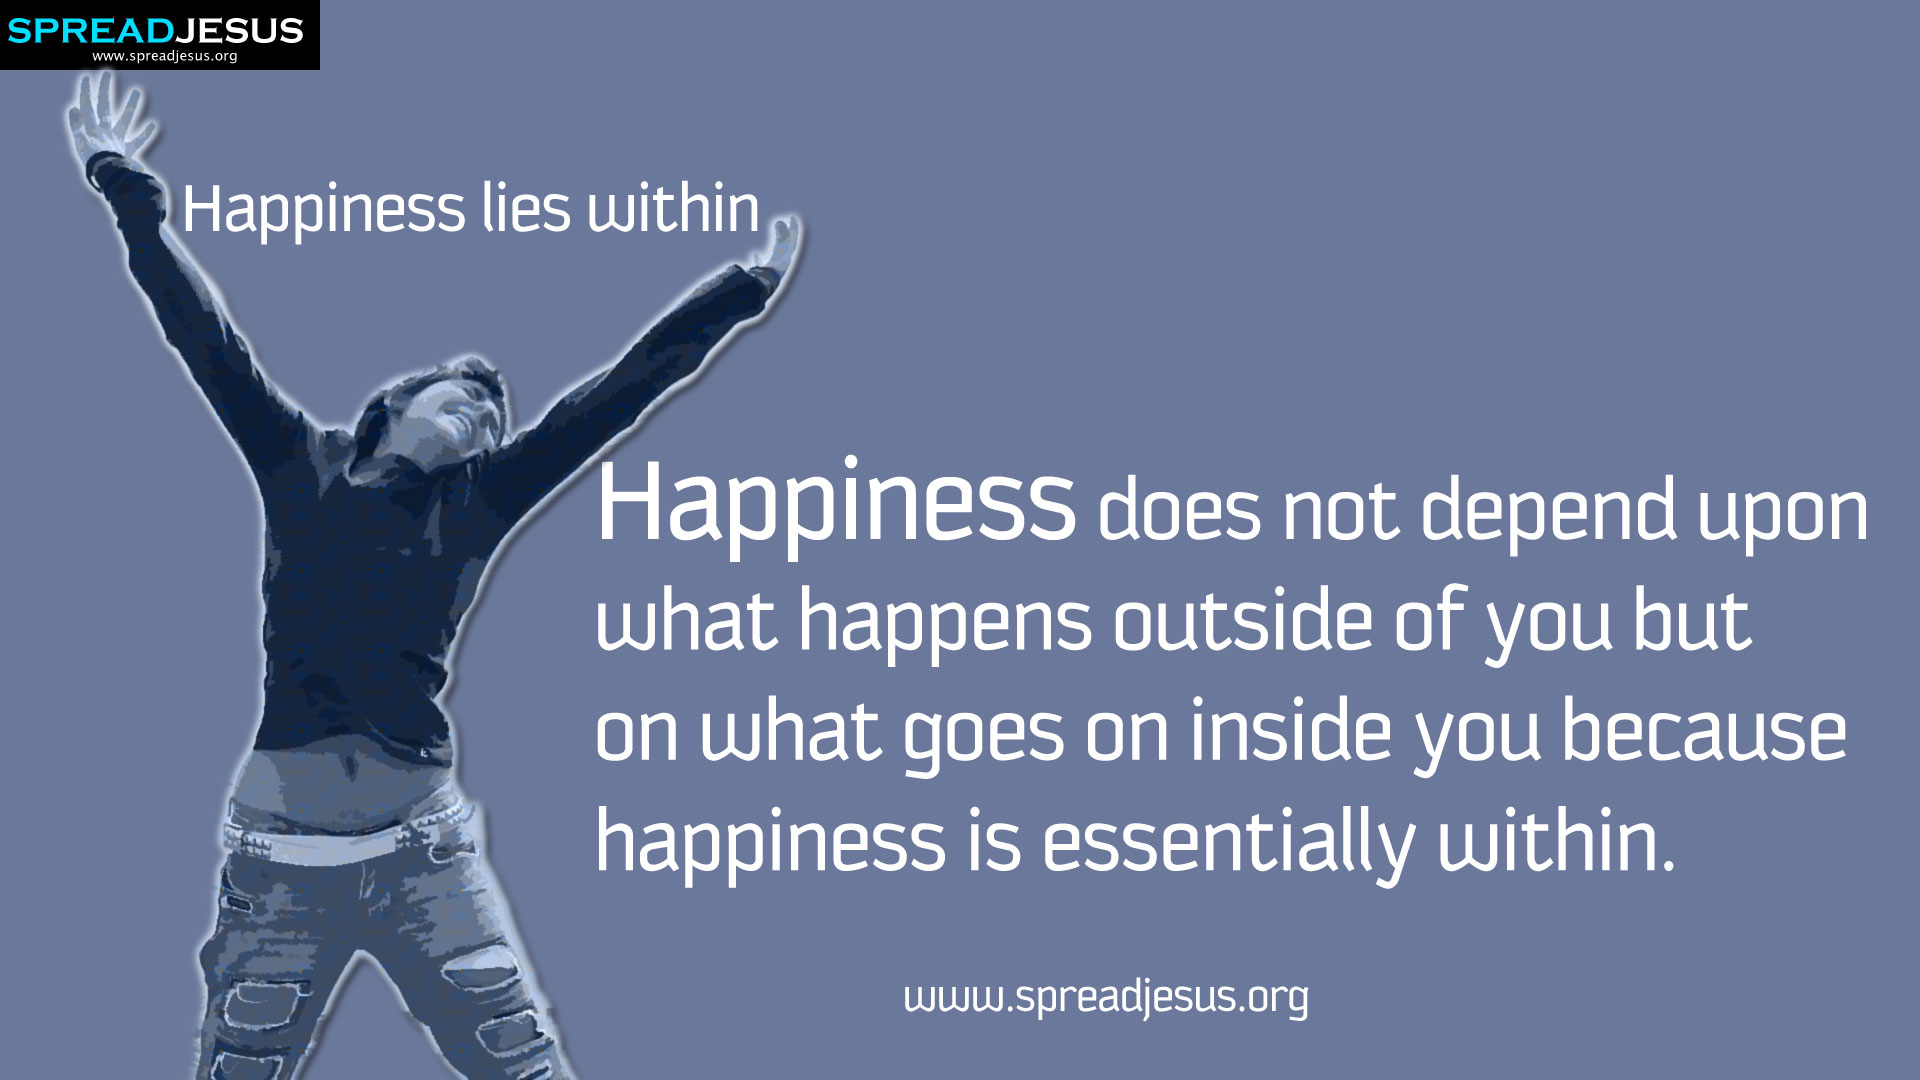 essay on happiness lies within Success and happiness interchangeable ideas to you answer this question in a brief essay with examples and illustrations to support sample essaydoc.